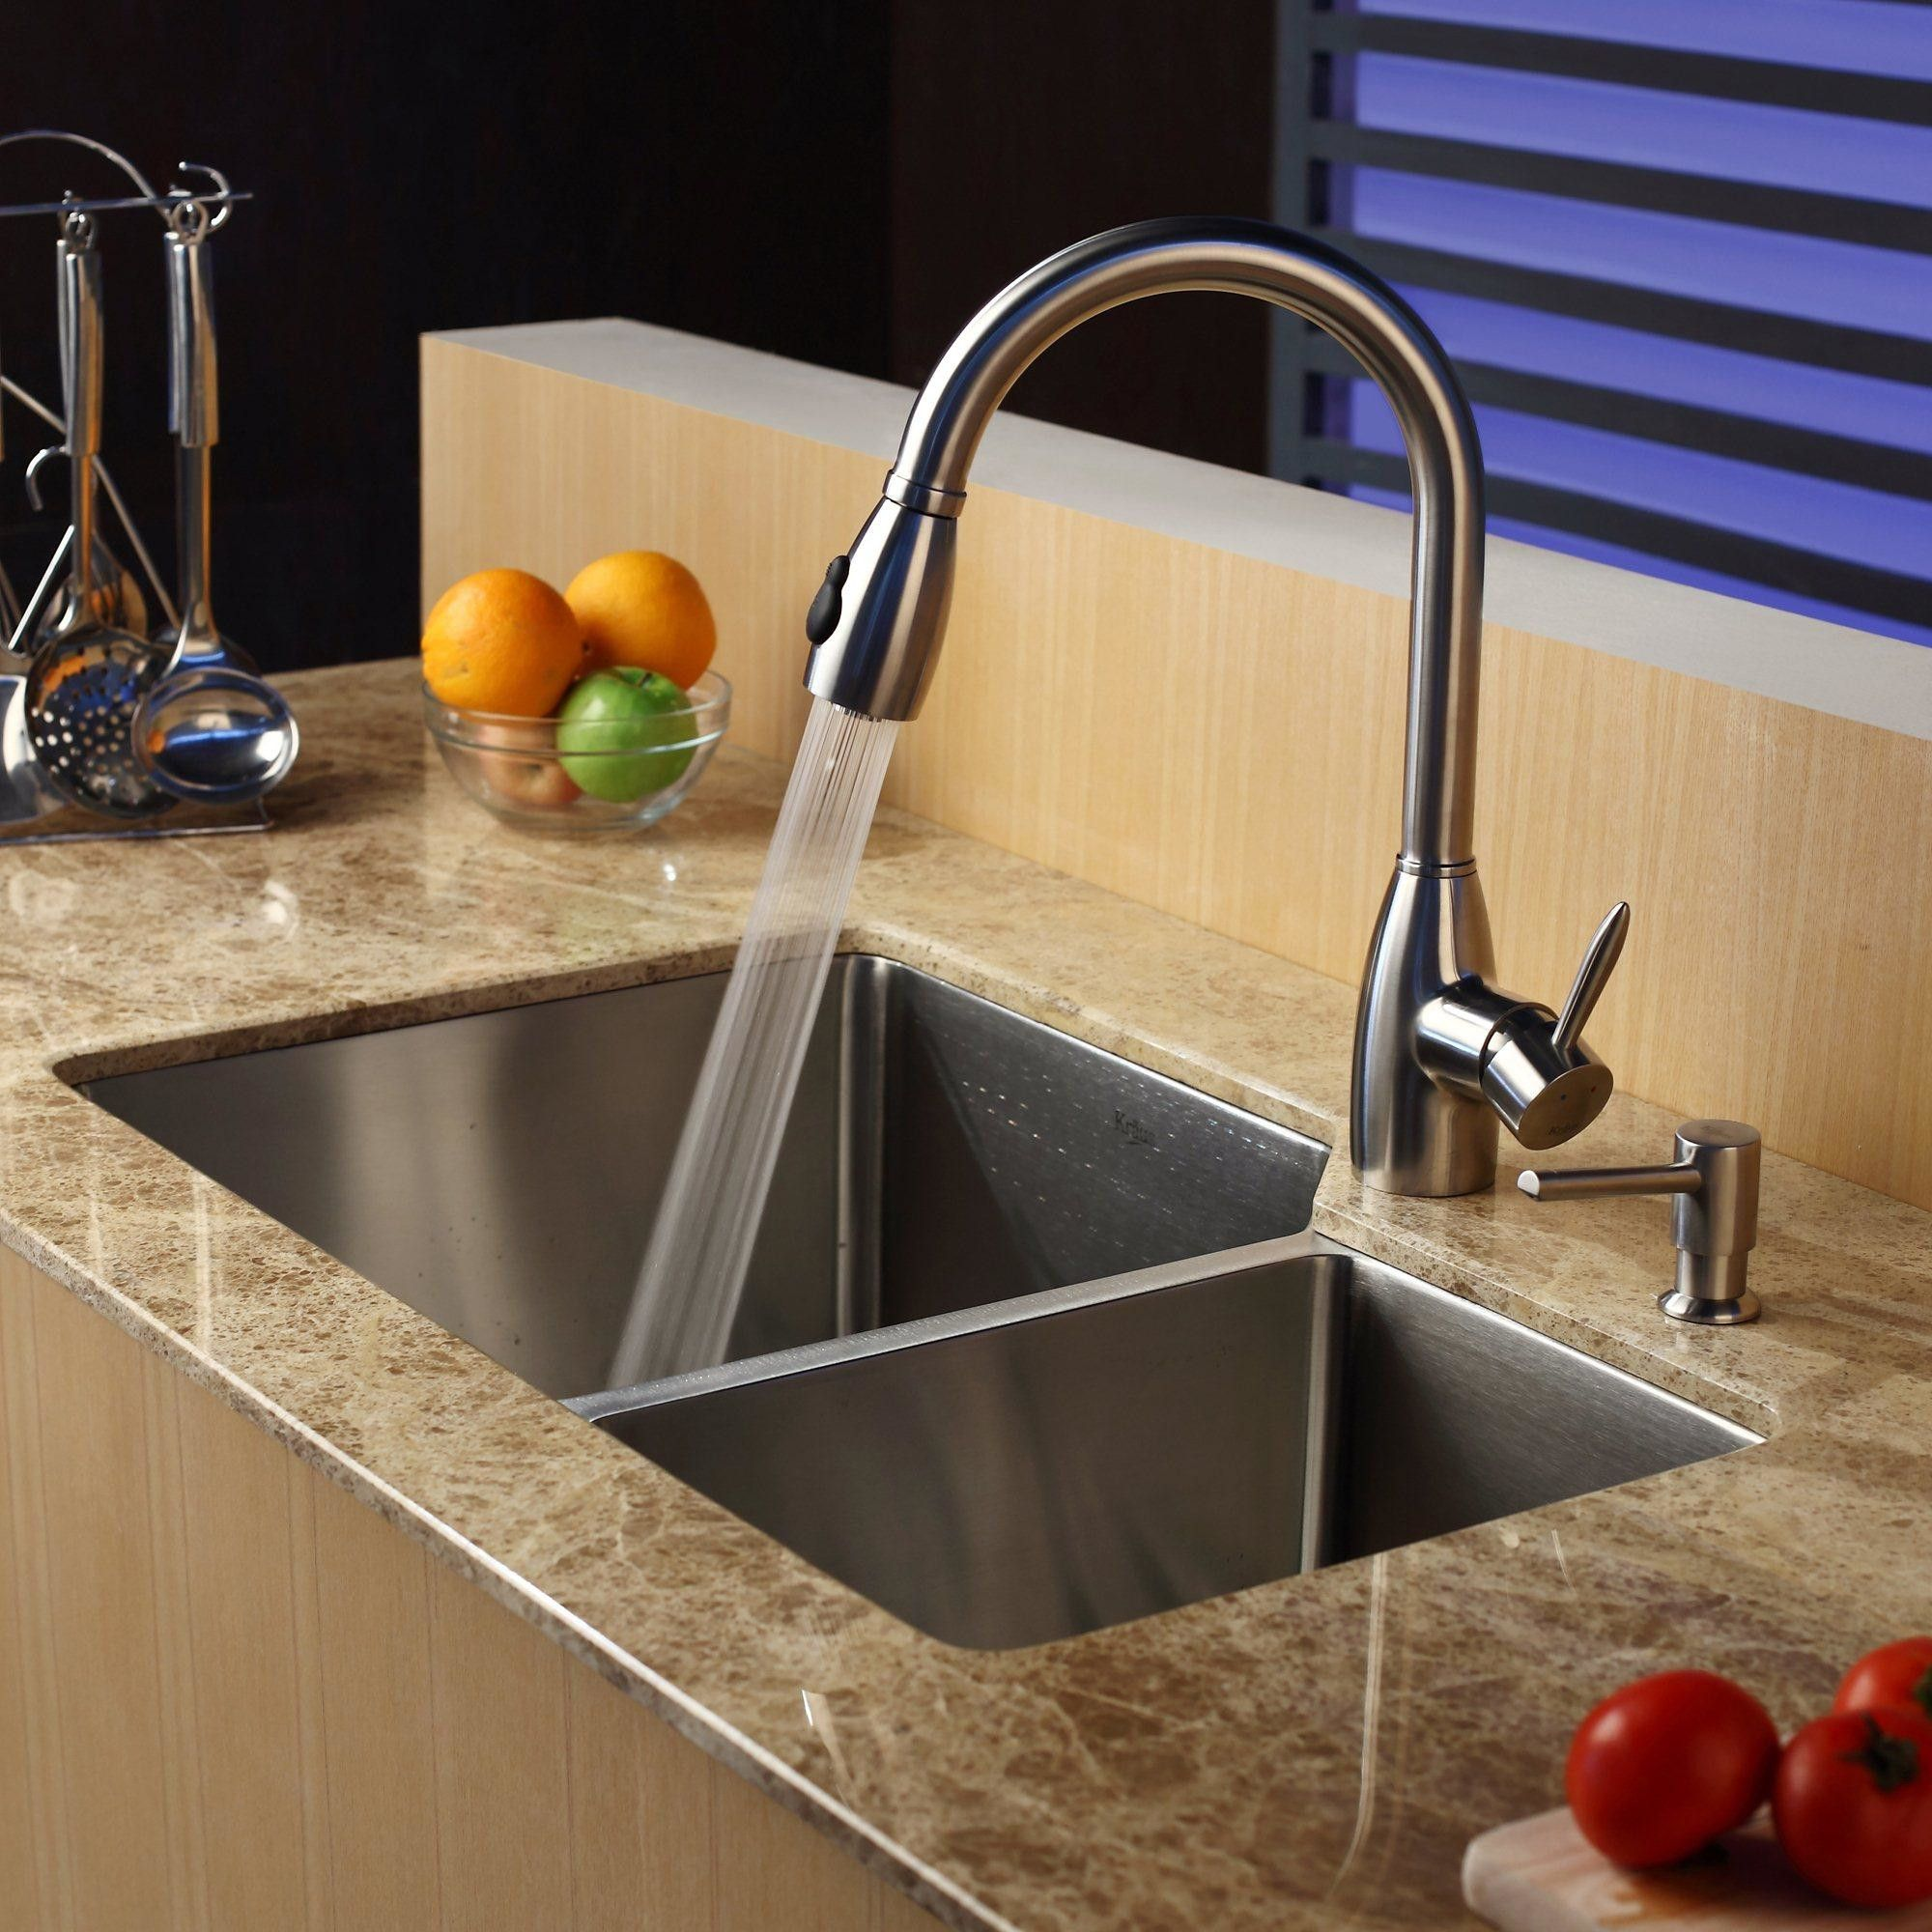 Modern Kitchen Installation With Lovable Kitchen Sink Soap Dispenser Ideas Kitchen Soap Dispenser Undermount Kitchen Sinks Double Bowl Undermount Kitchen Sink